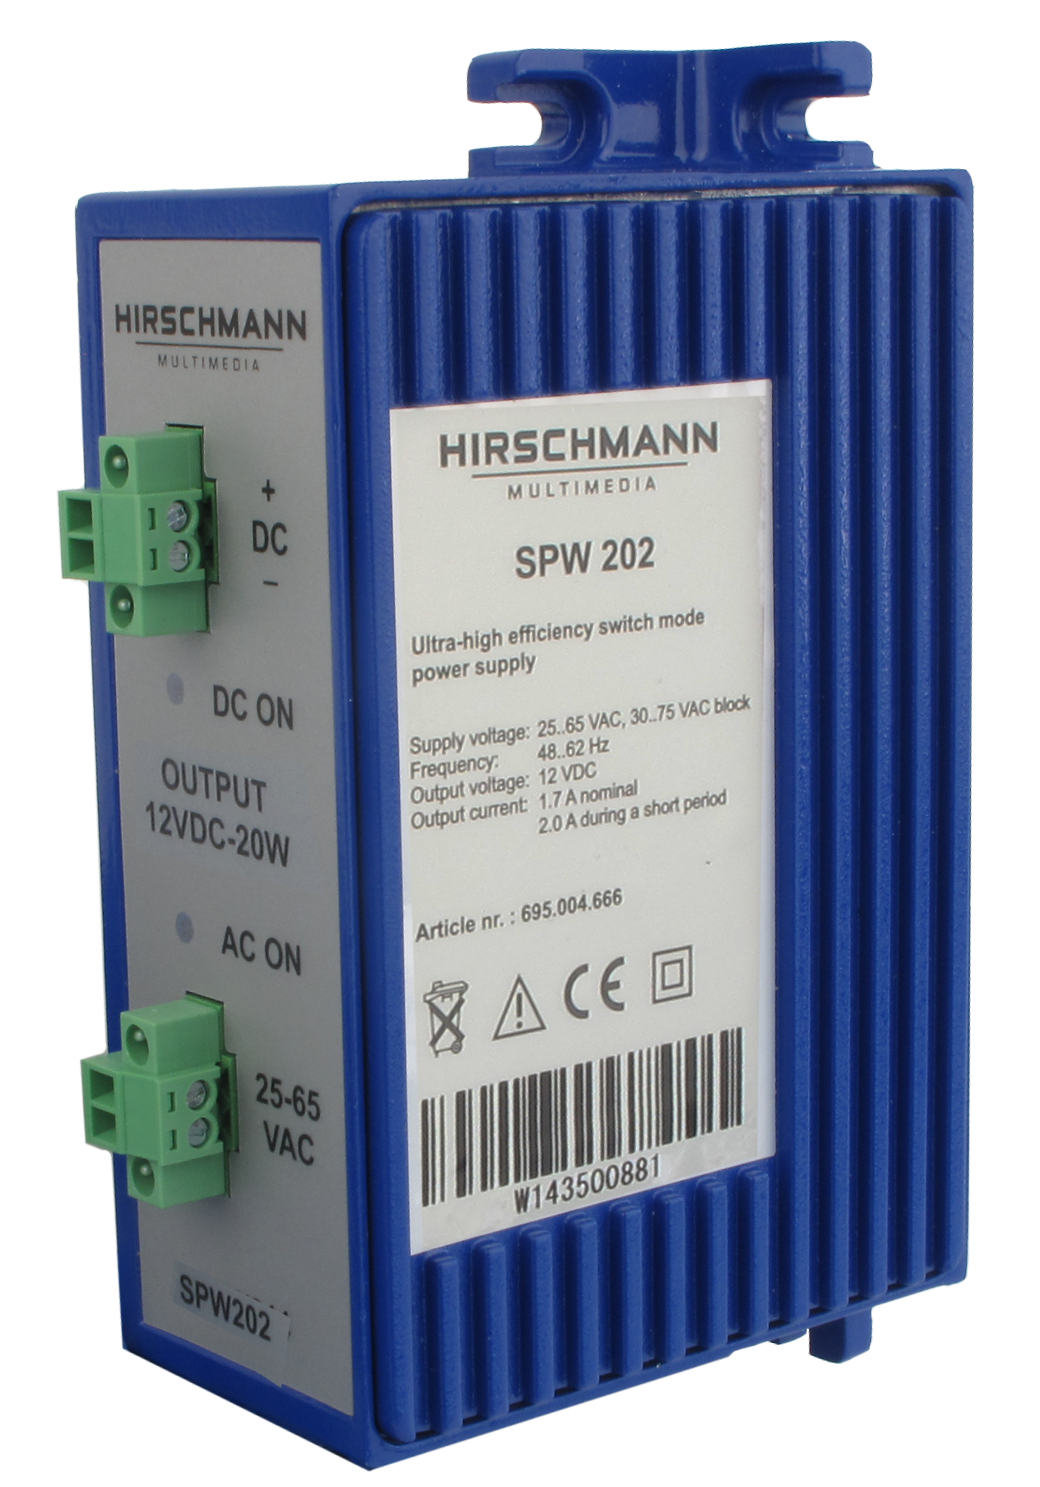 Hirschmann SPW202 Article number 695004666 switch mode power supply